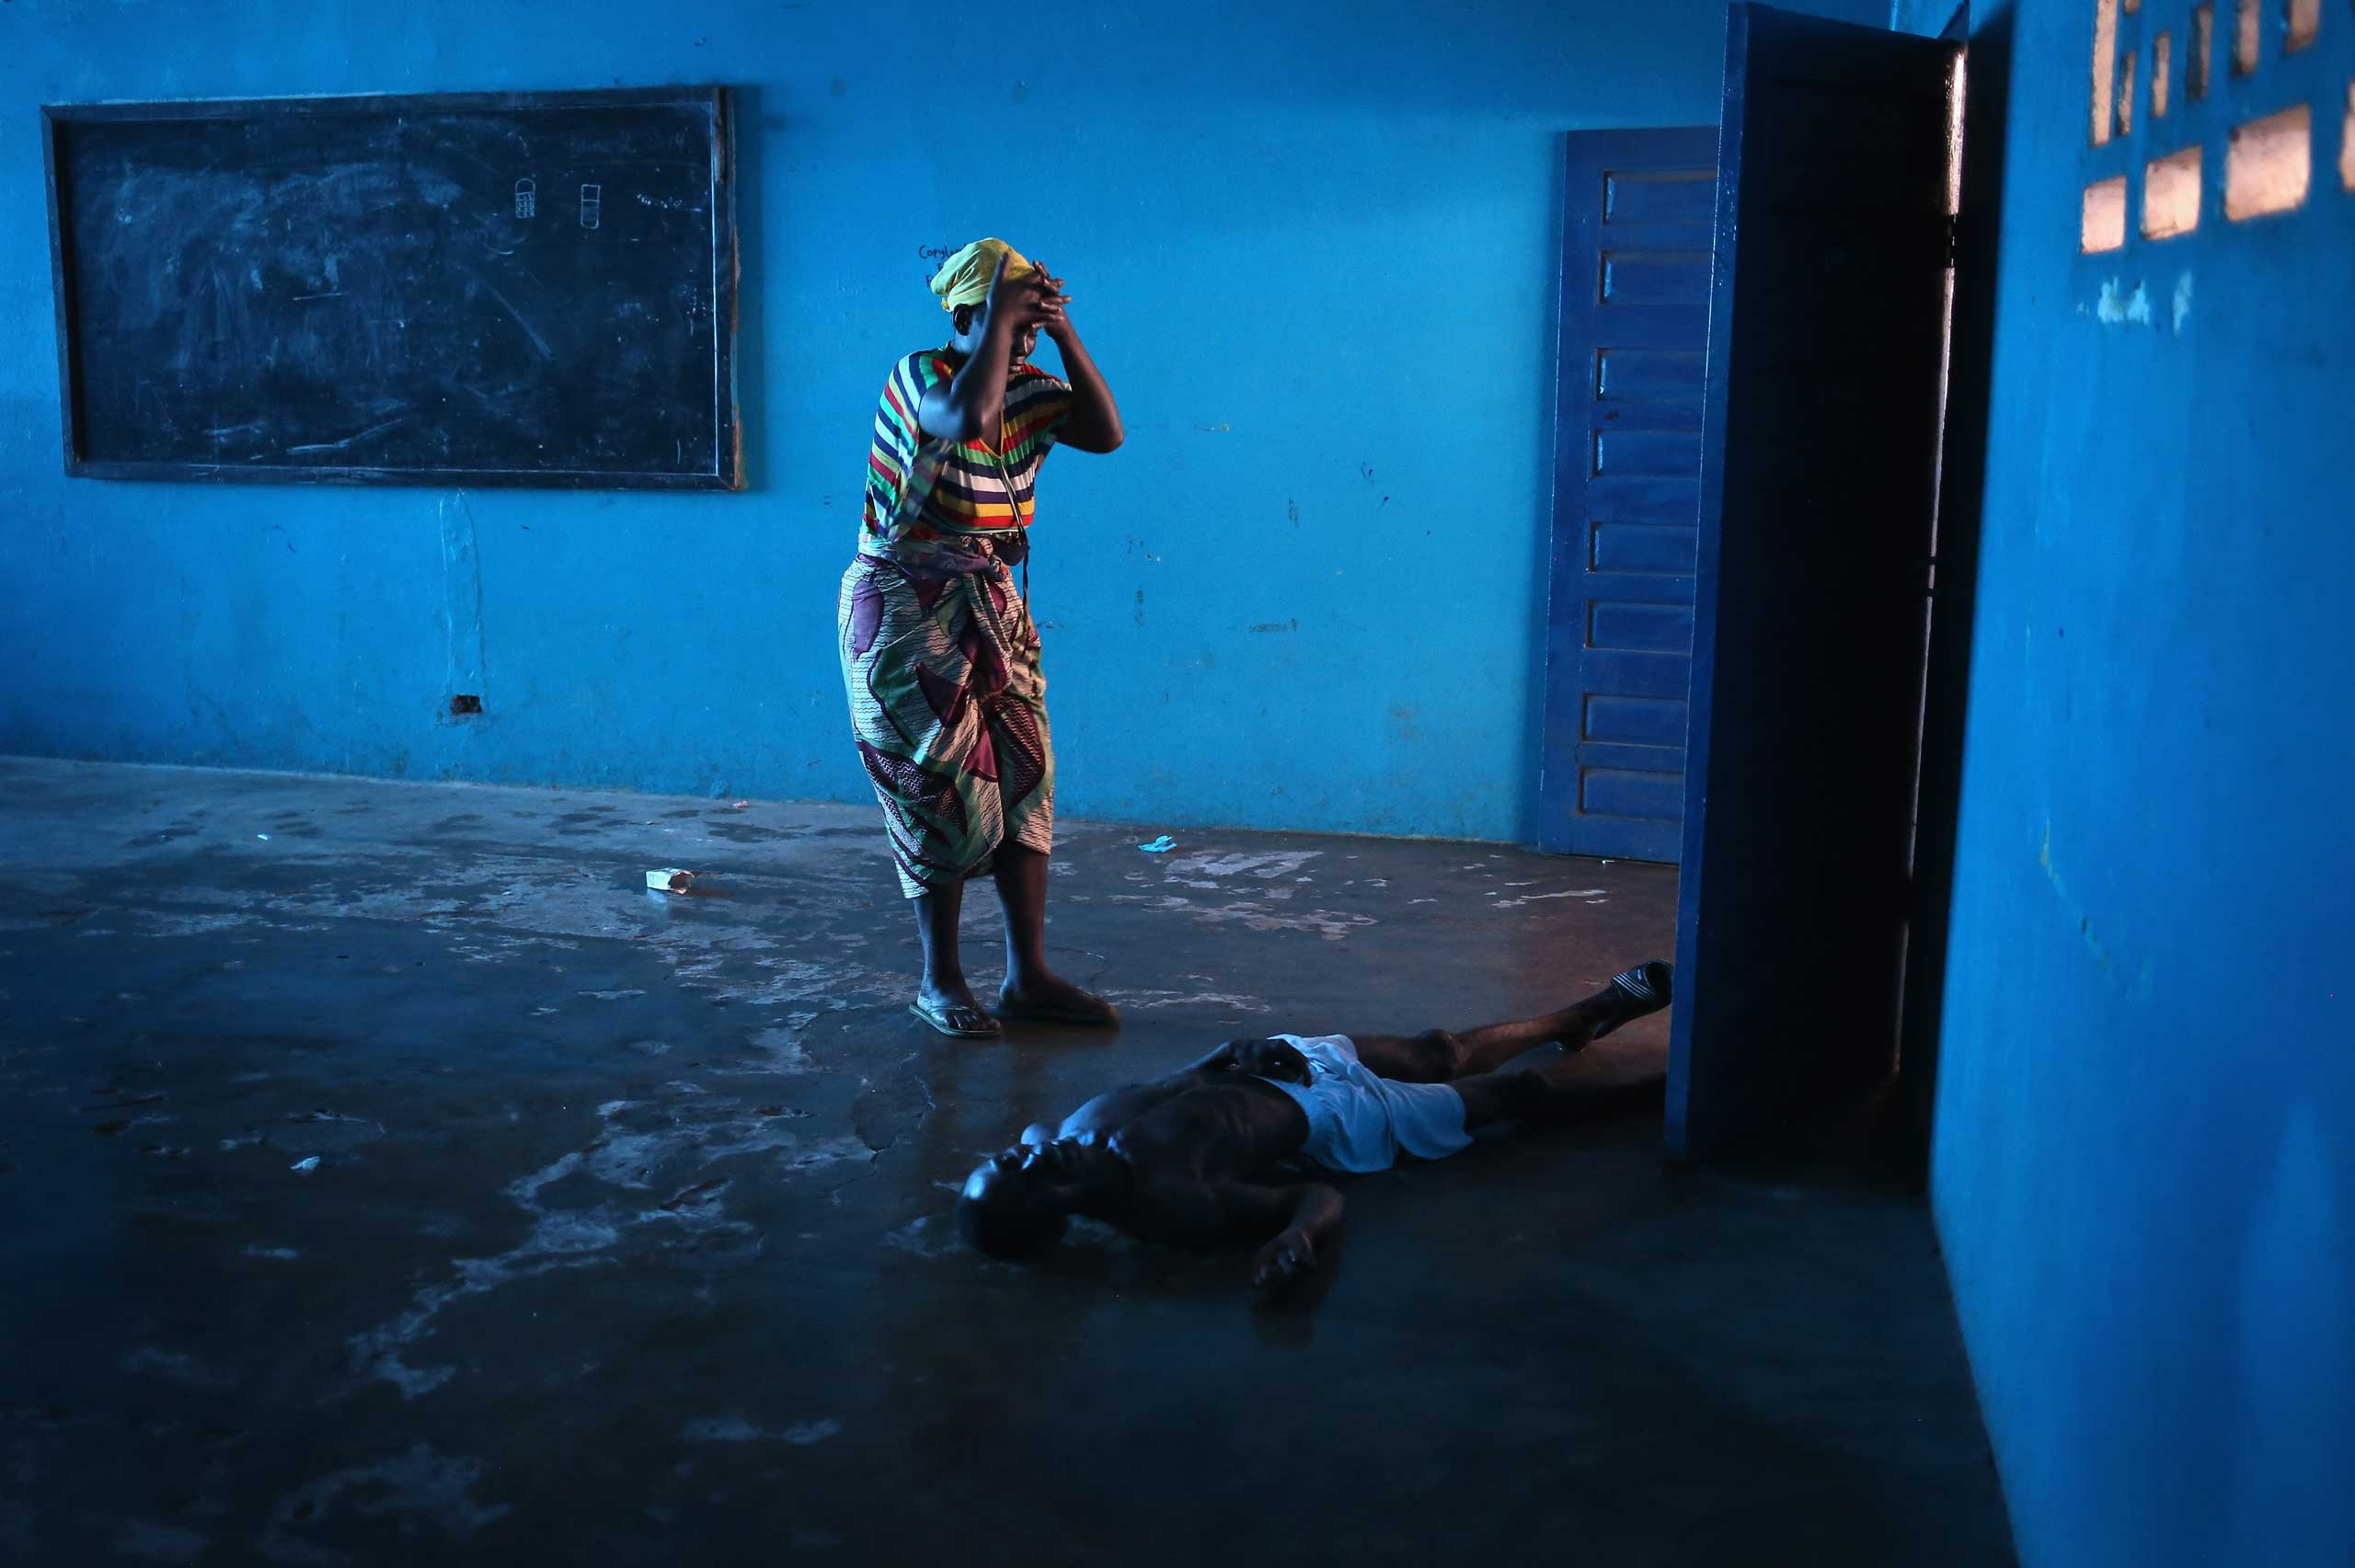 TIME LightBox: How John Moore Covered the Ebola OutbreakUmu Fambulle stands over her husband Ibrahim after he staggered and fell, knocking him unconscious in an Ebola ward on Aug. 15, 2014 in Monrovia, Liberia.